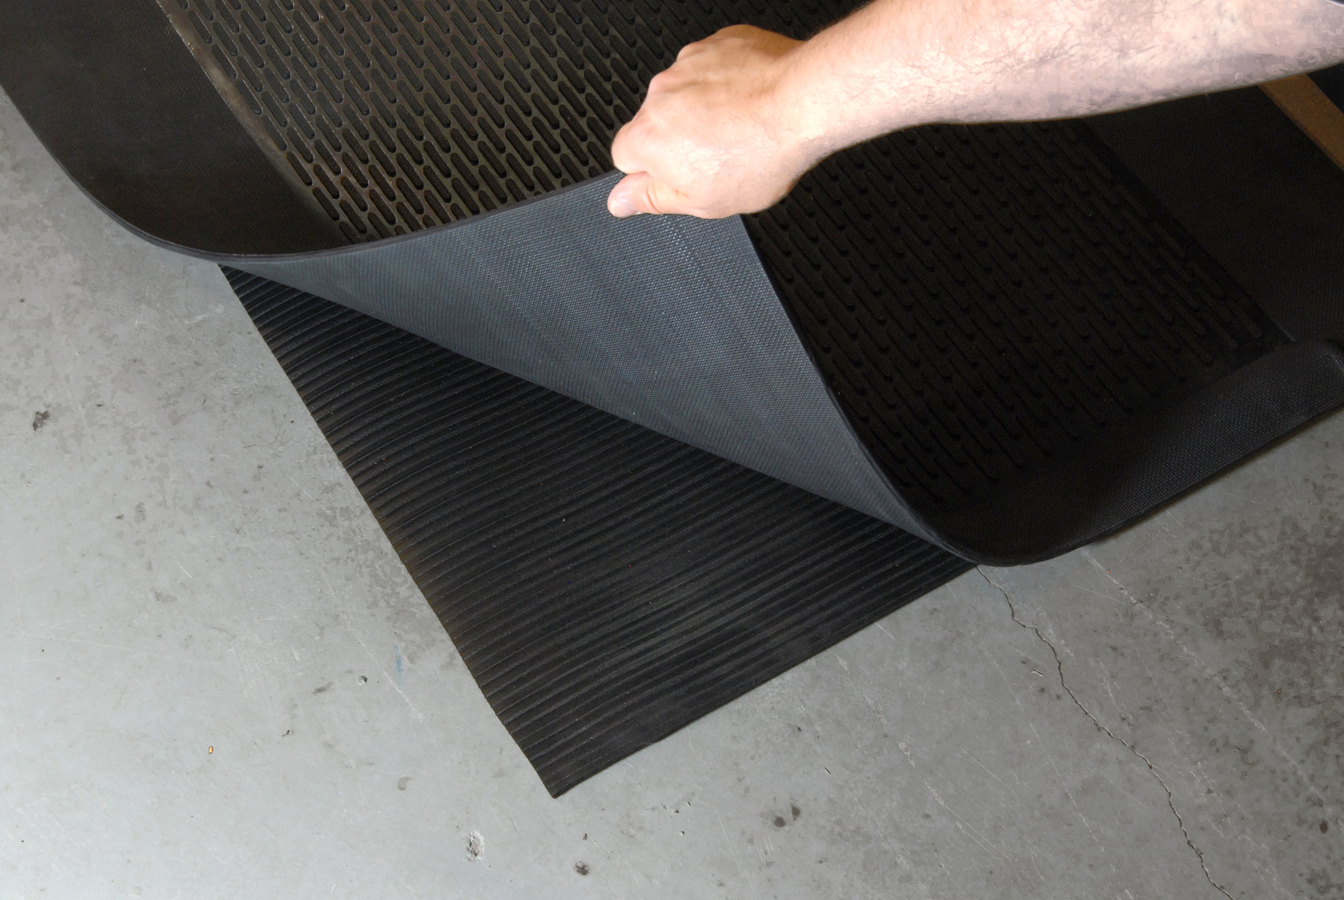 New Greener Heat Anti Fatigue Mats Warm And Relieve Aching